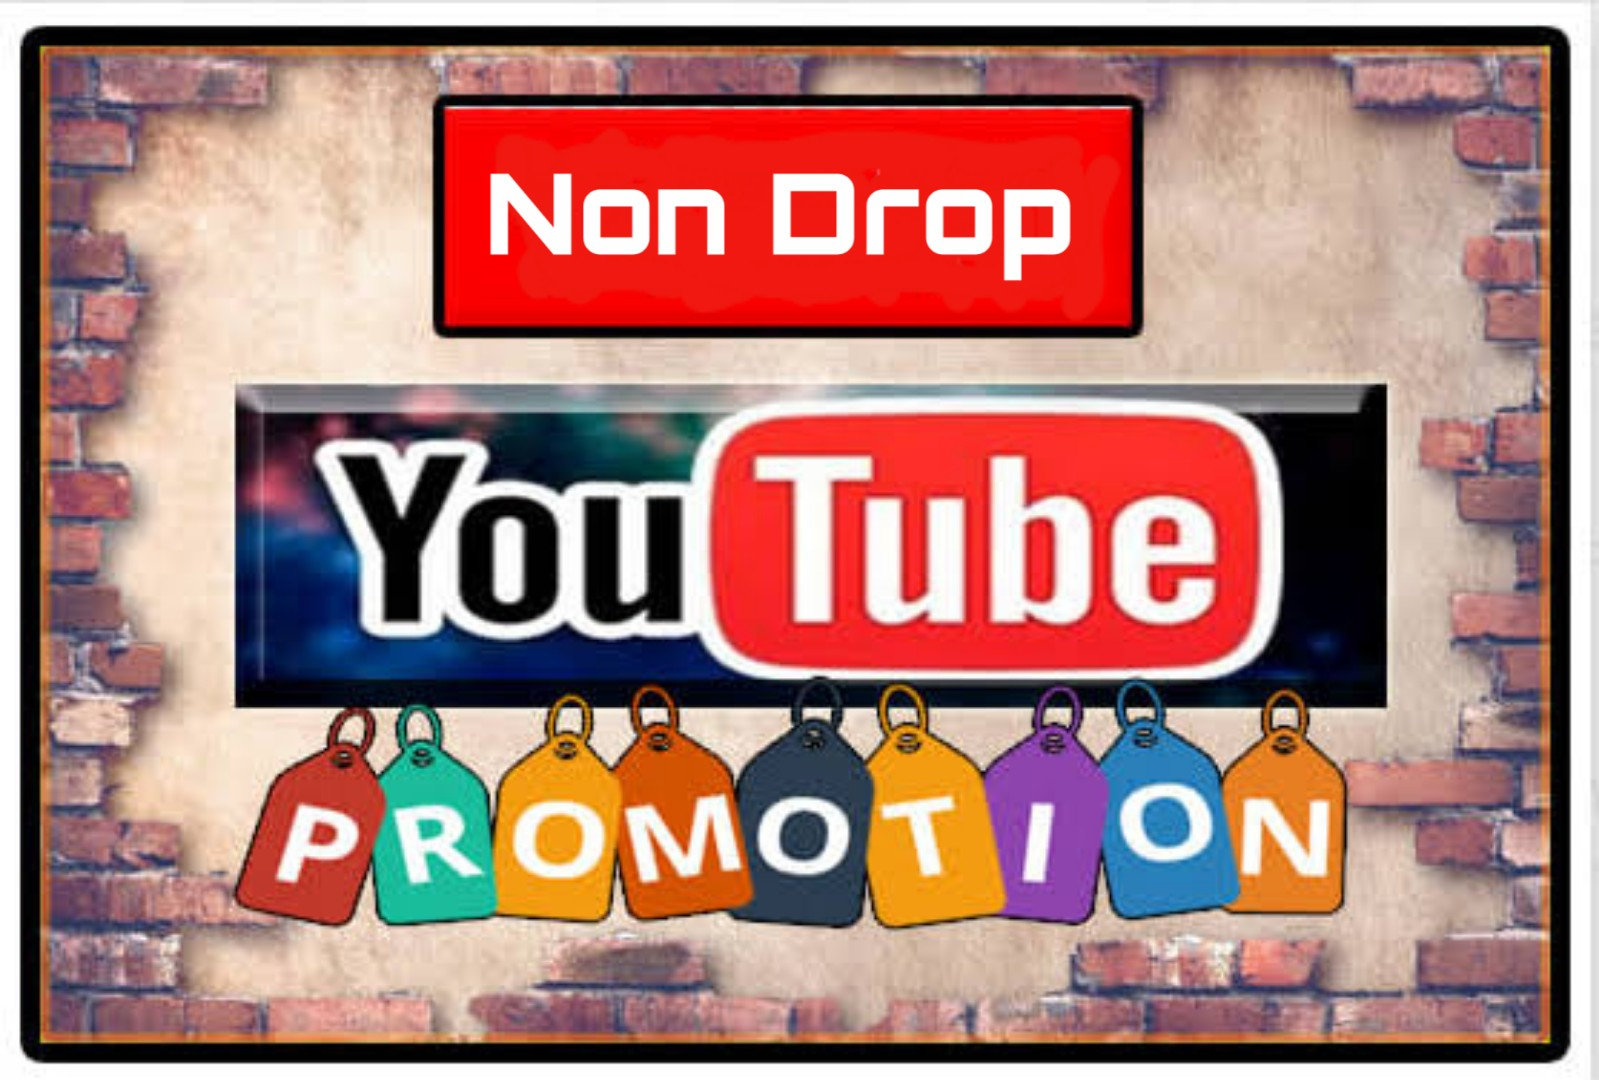 Non Drop Youtube Marketing Safe Video Promotion Via Real User